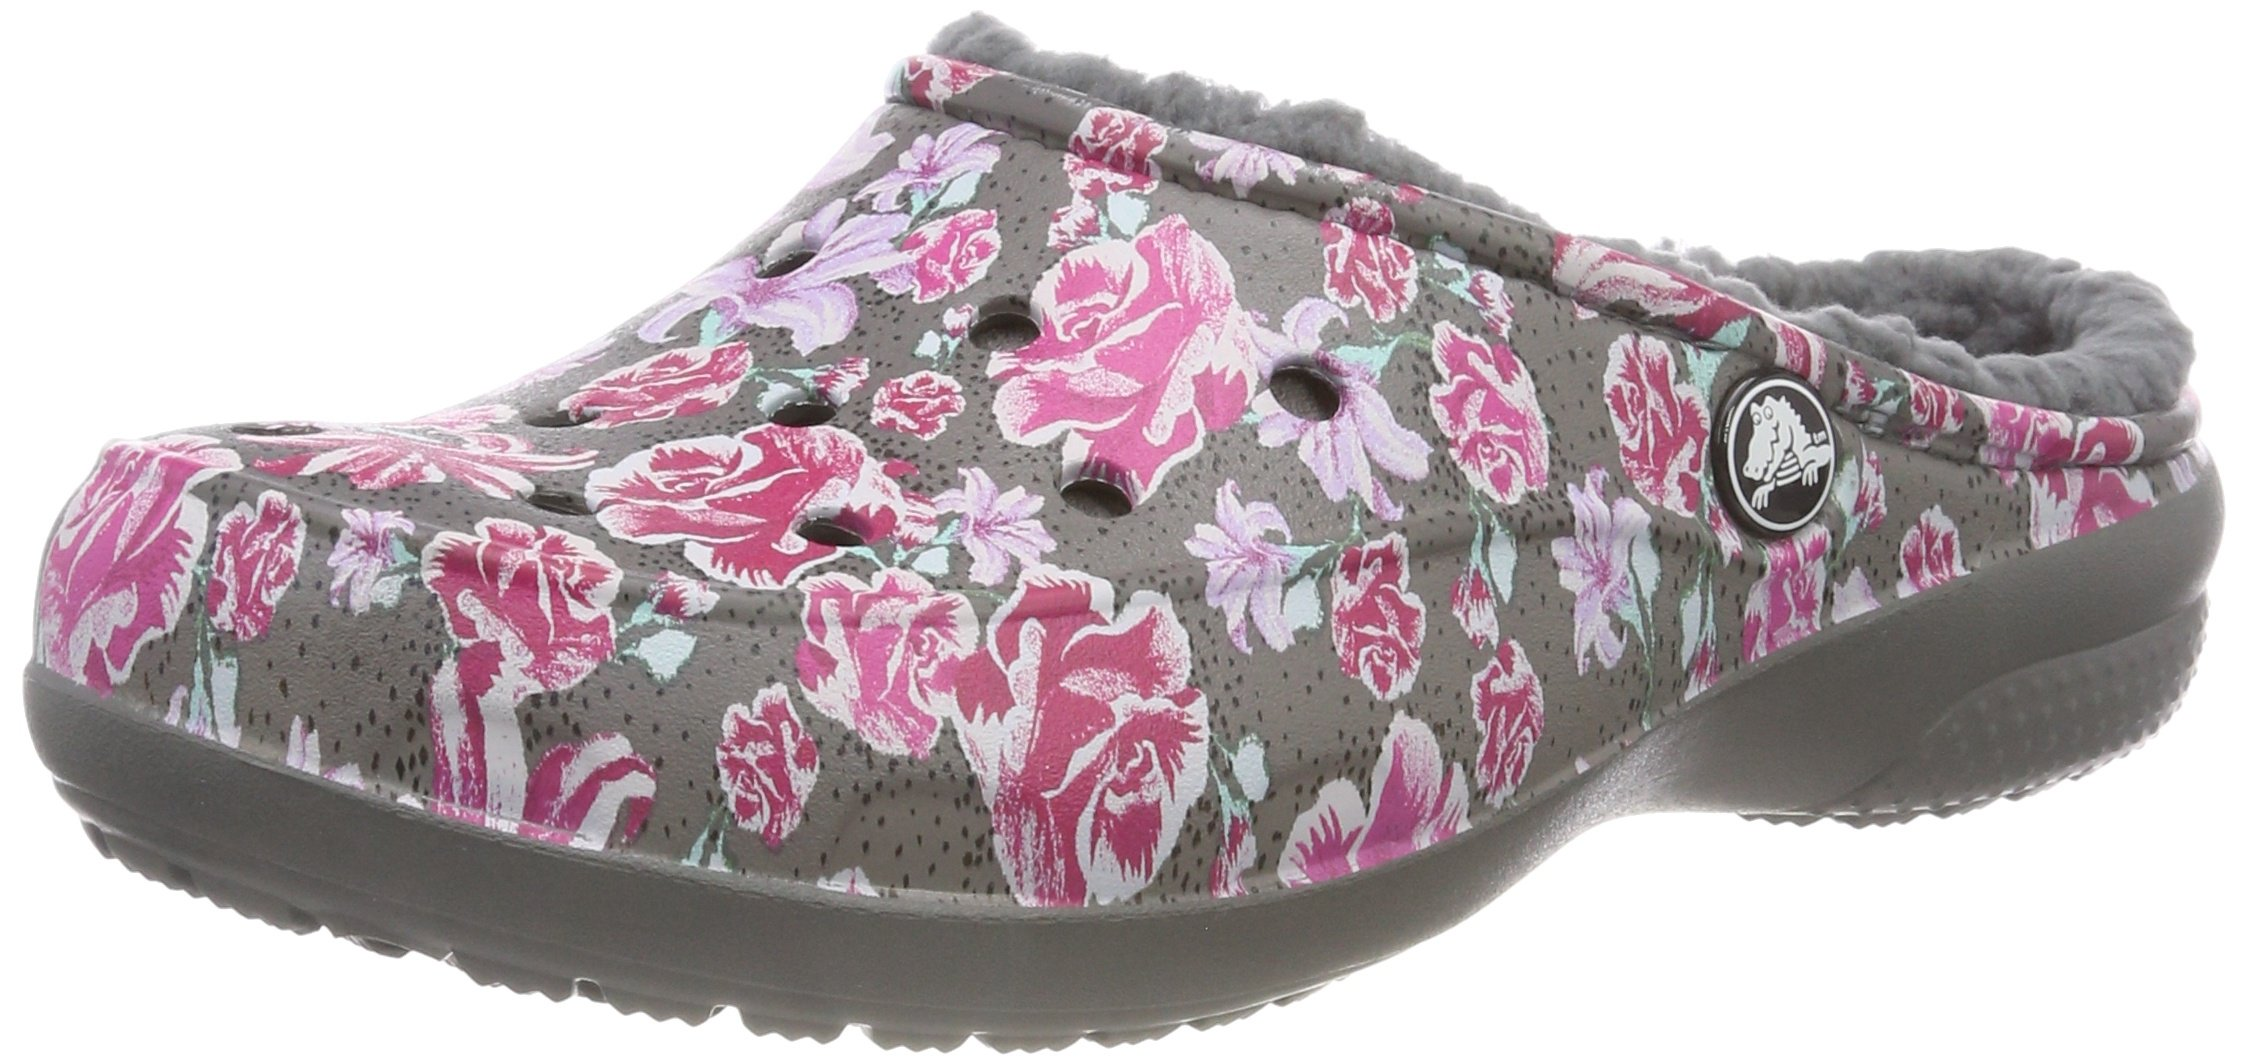 Crocs Women's Freesail Graphic Lined Clog, Multi Floral/Slate Grey, W8 M US